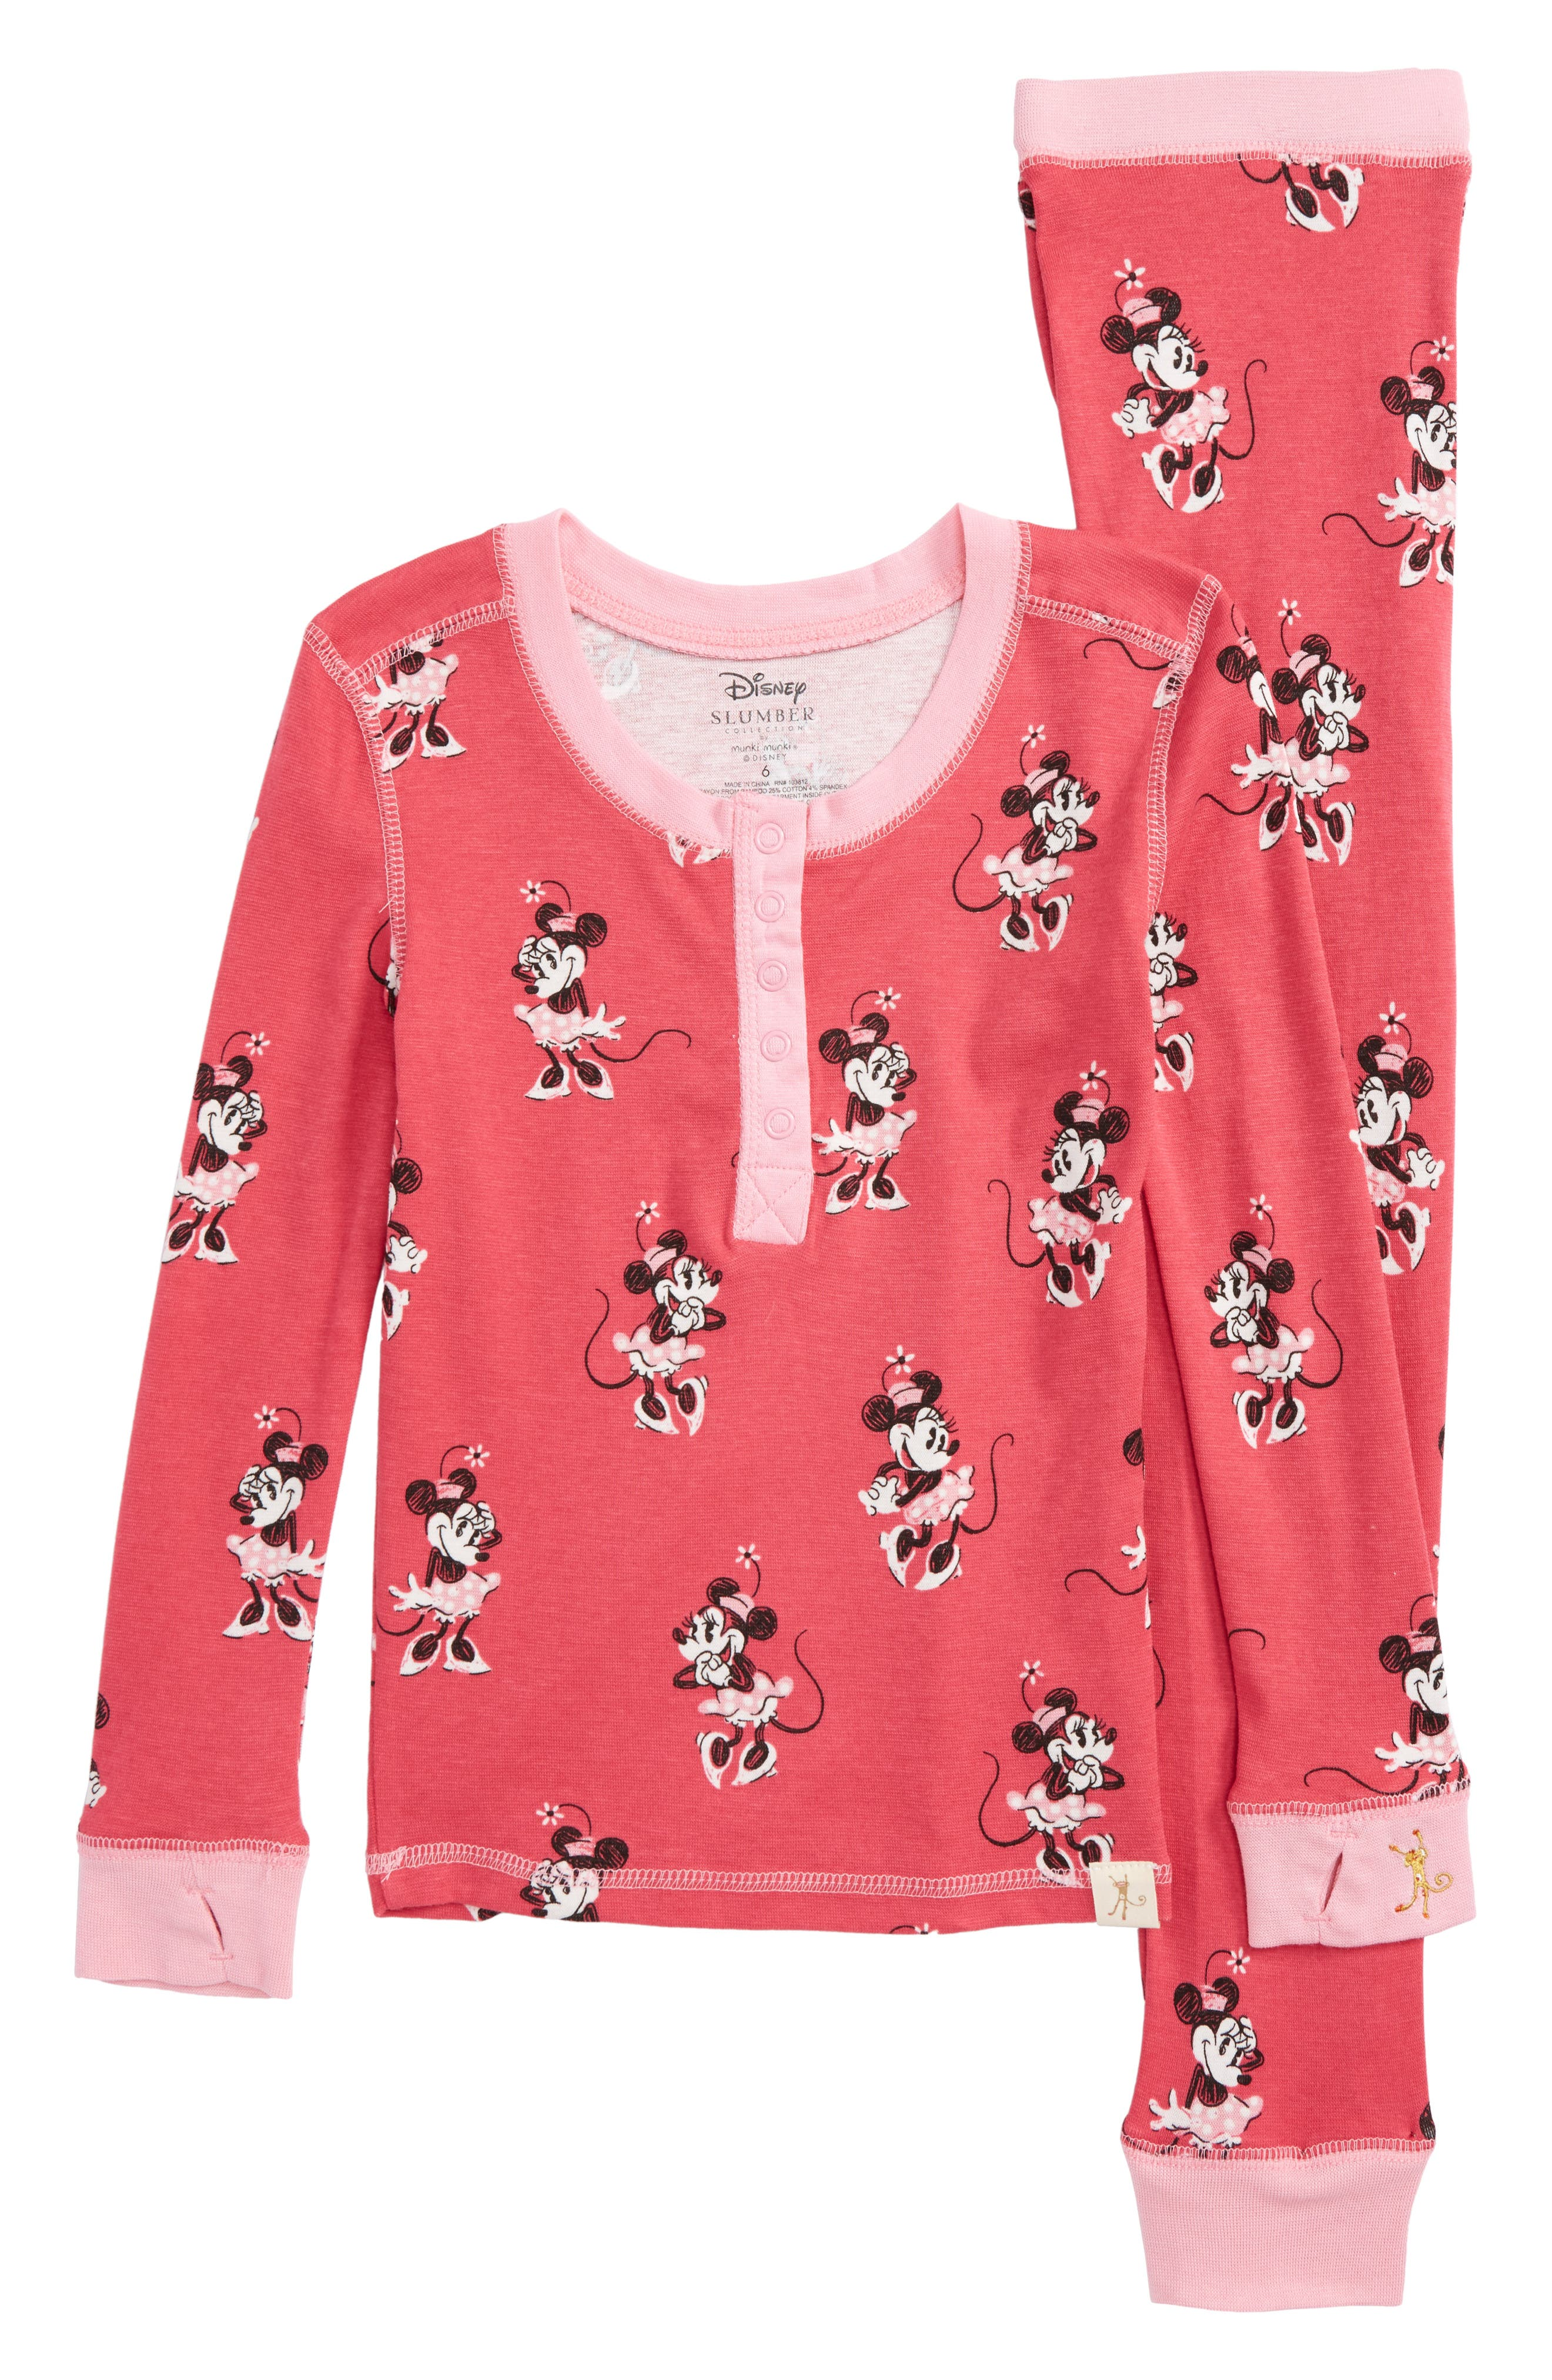 Disney – Minnie Mouse Fitted Two-Piece Pajamas,                         Main,                         color,